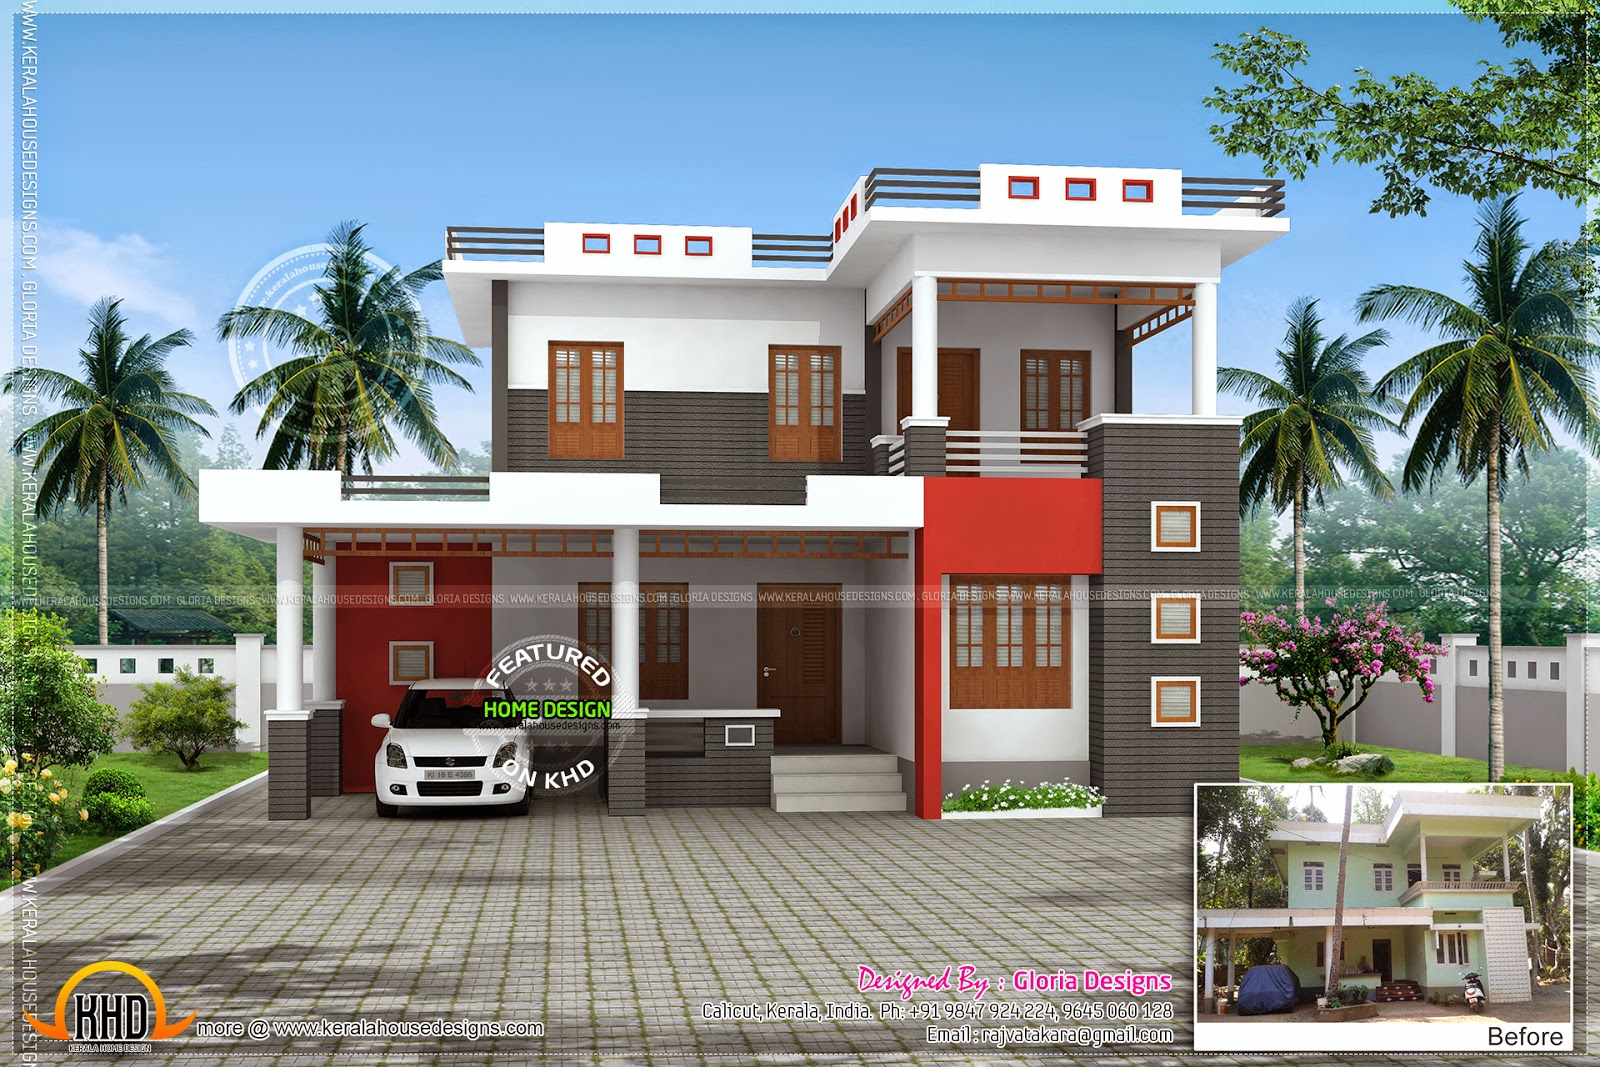 Renovation 3d model for an old house kerala home design for Latest model house design